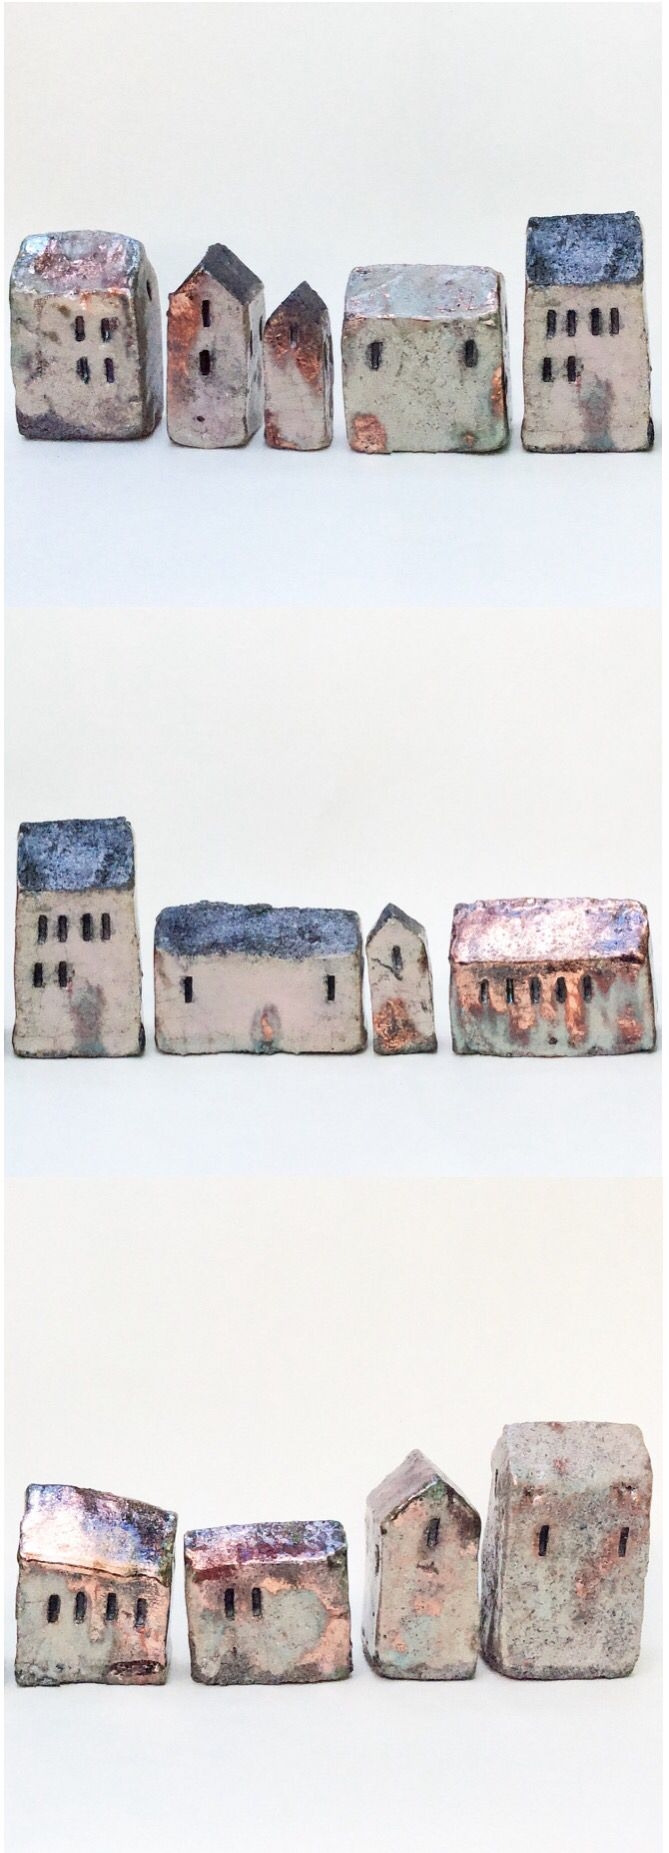 Little #raku houses. #ceramics #asiaceramics